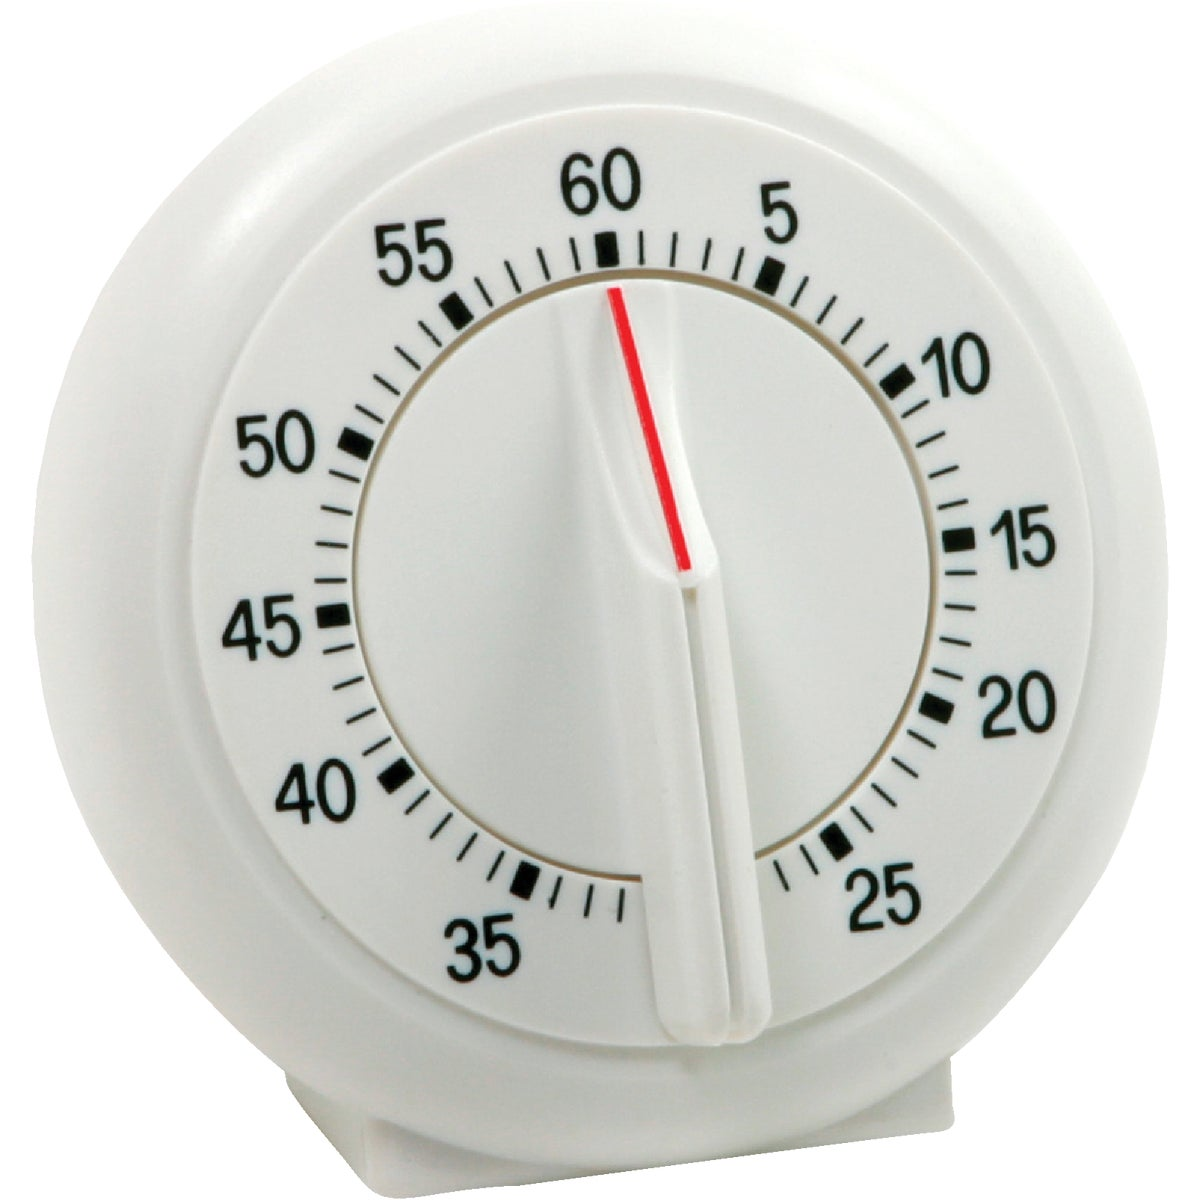 60 MINUTE DIAL TIMER - 1470 by Norpro